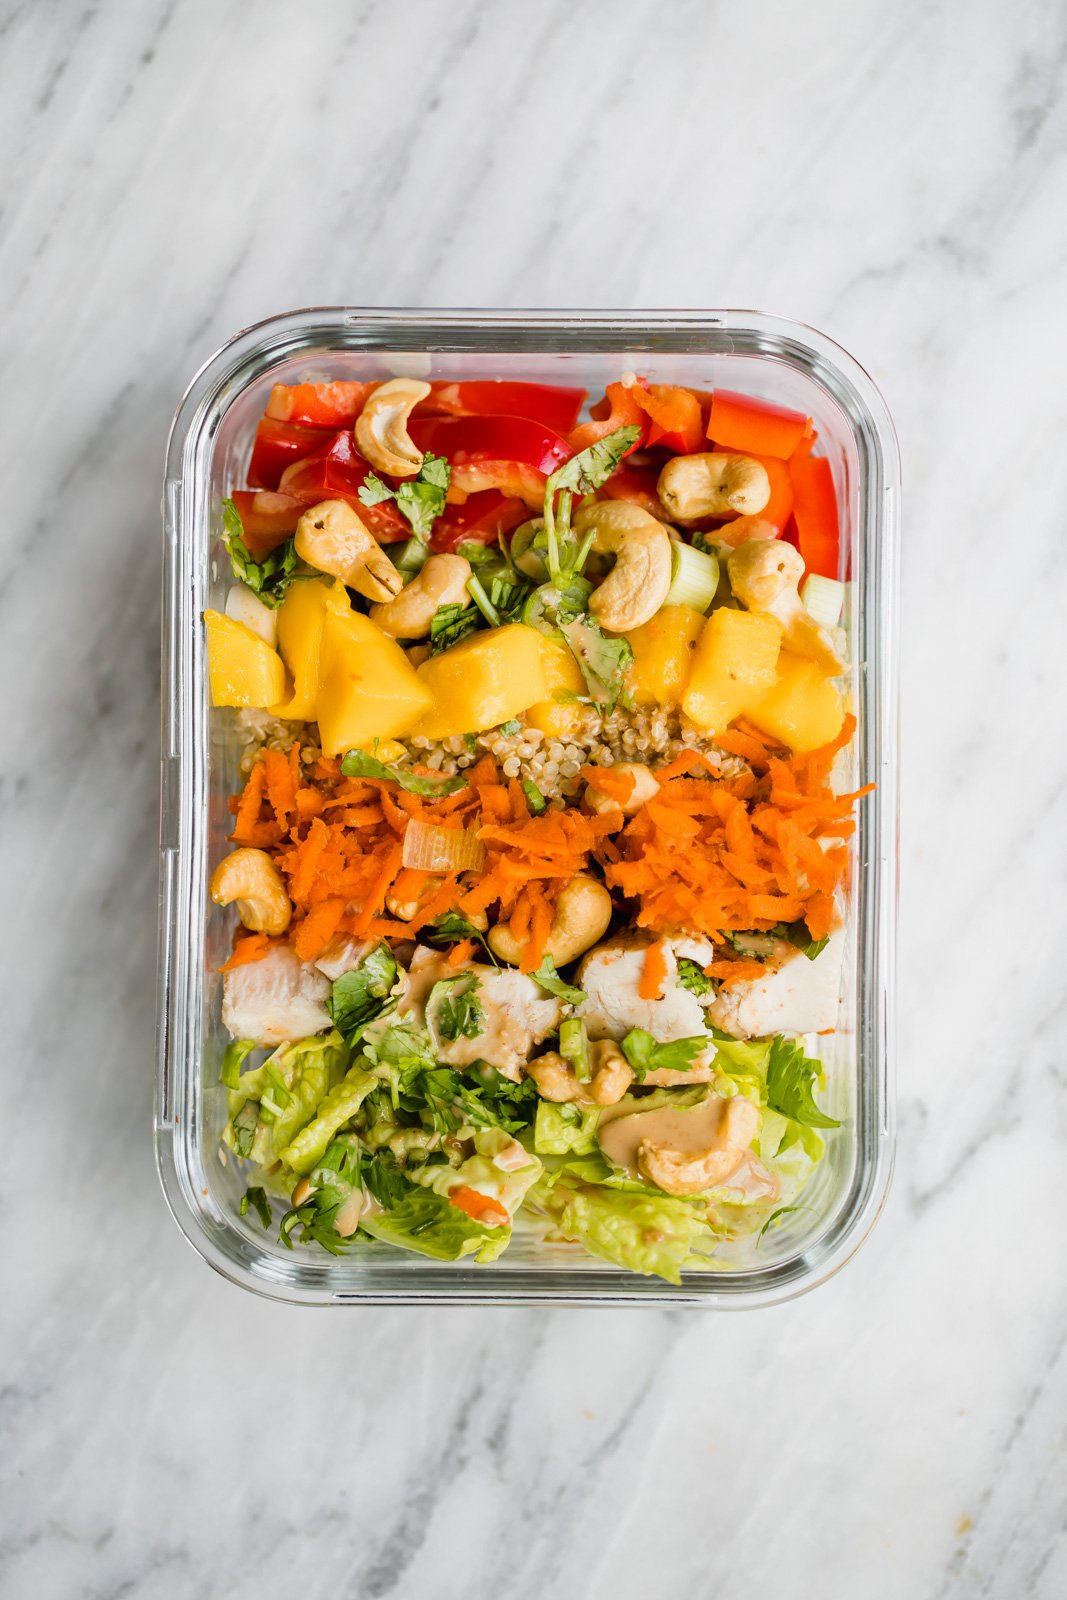 Romaine, cashews, chicken, shredded carrots, mango and red bell pepper in a glass container on a marble board